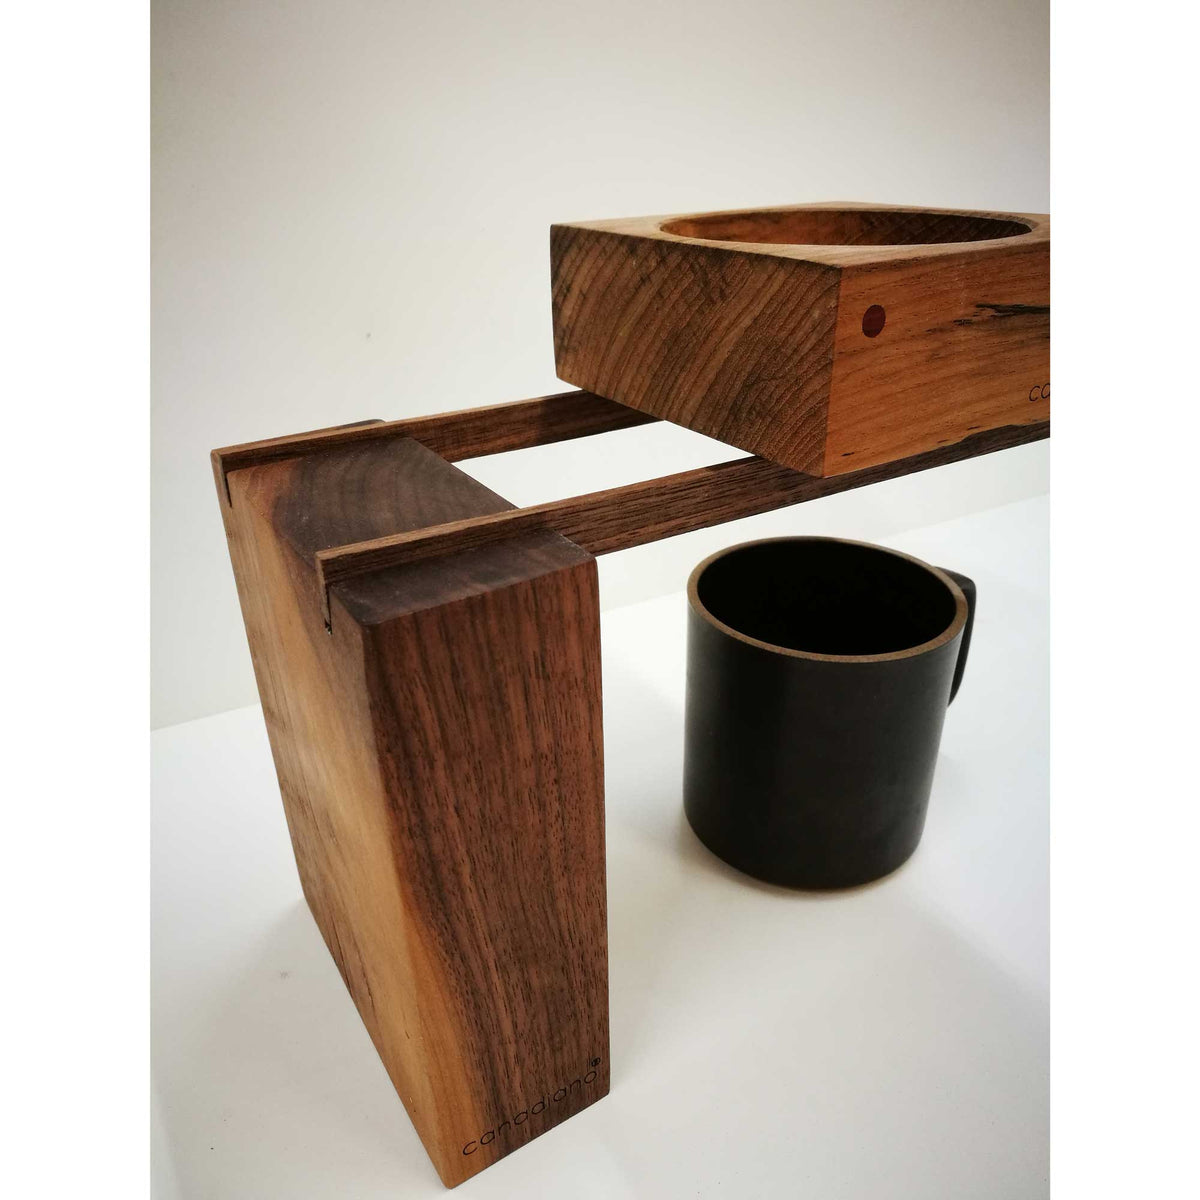 Canadiano Pour-Over Stand